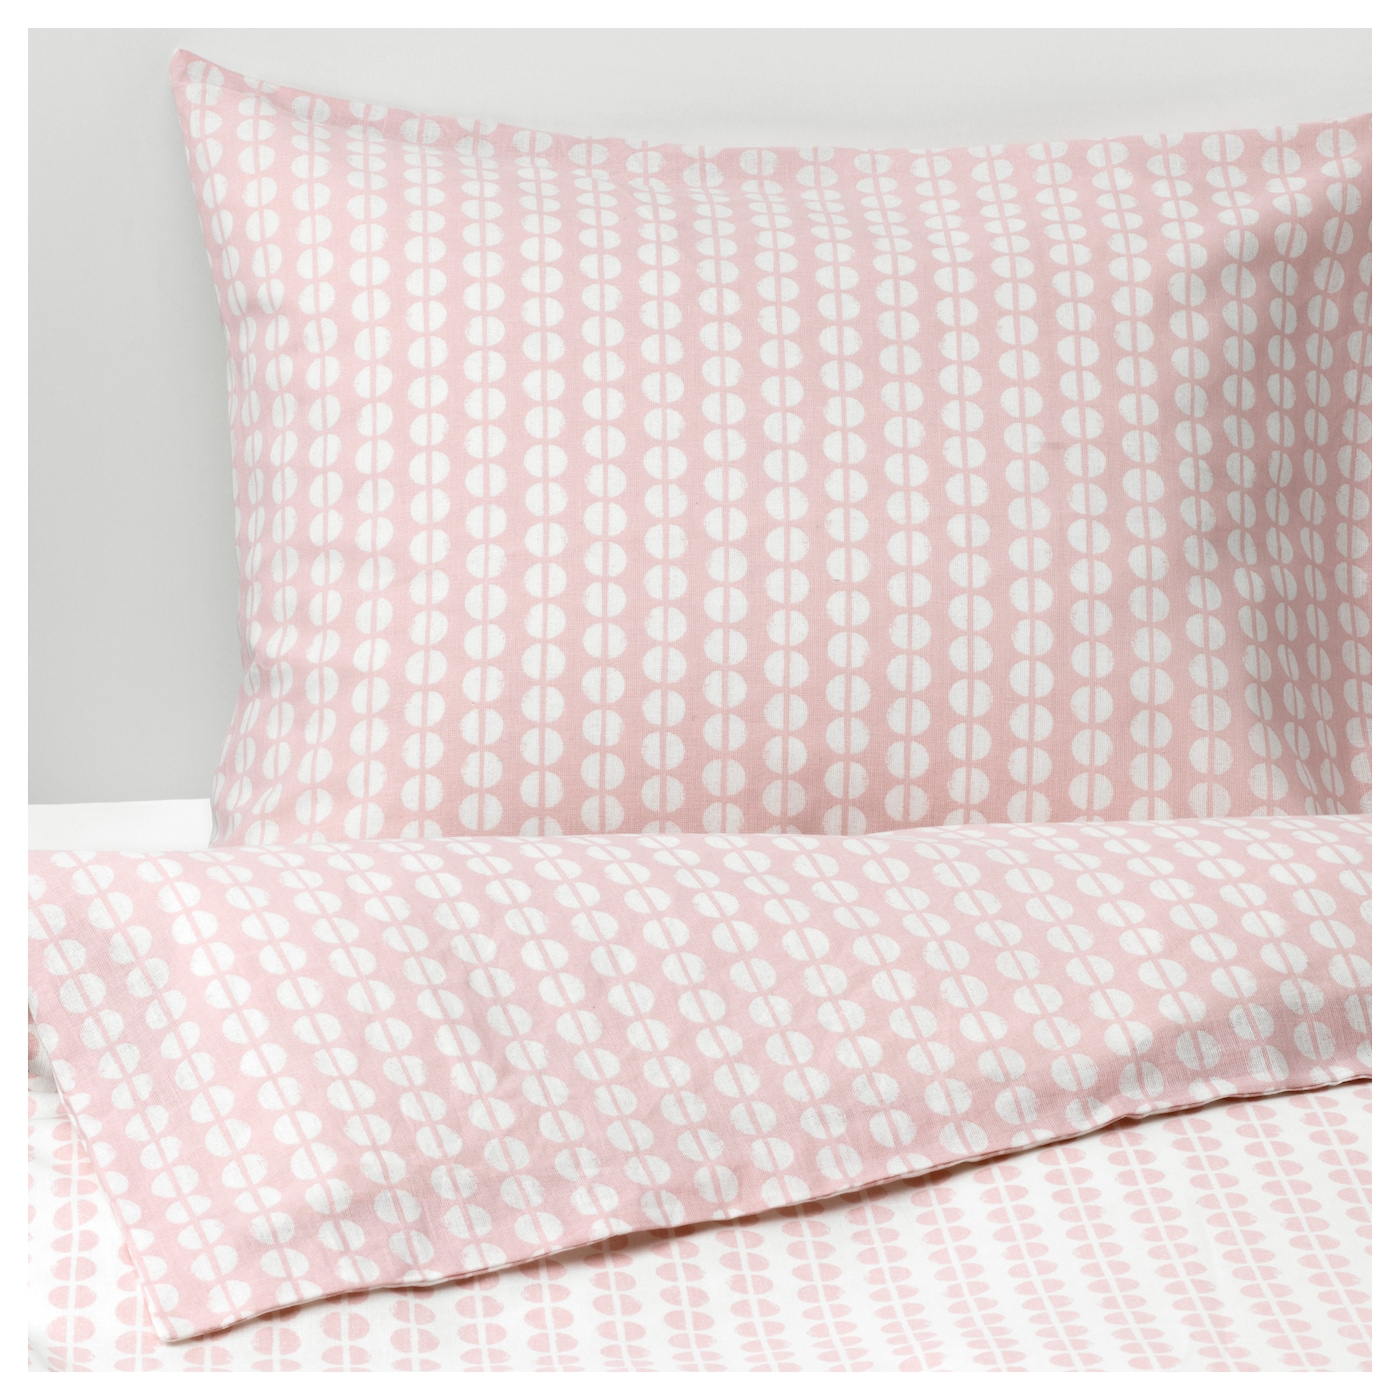 fj llvedel quilt cover and 2 pillowcases pink 240x220